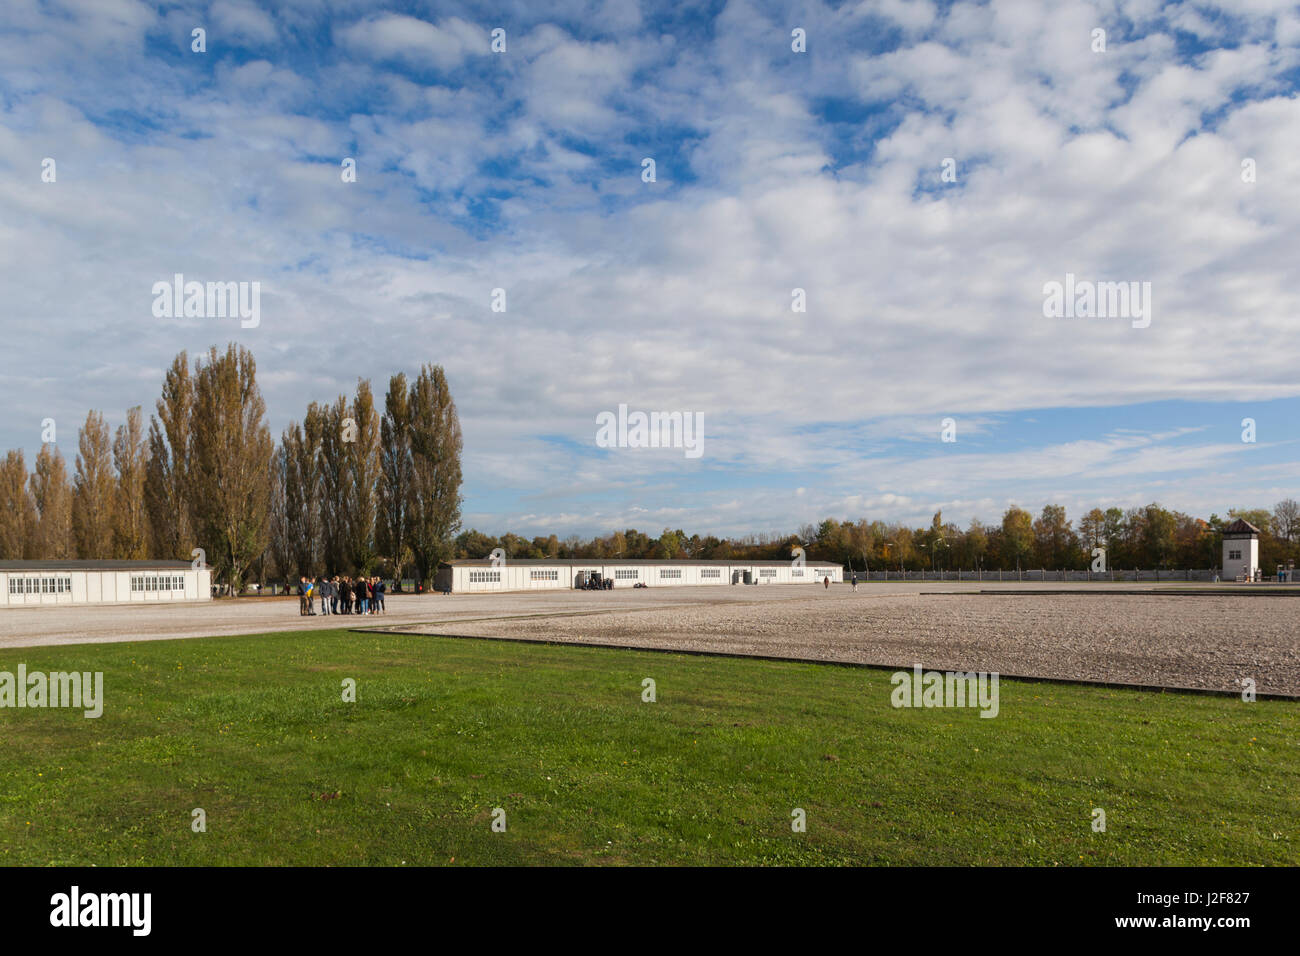 Germany, Bavaria, Munich-Dachau, WW2-era Nazi concentration camp, barracks building, exterior - Stock Image